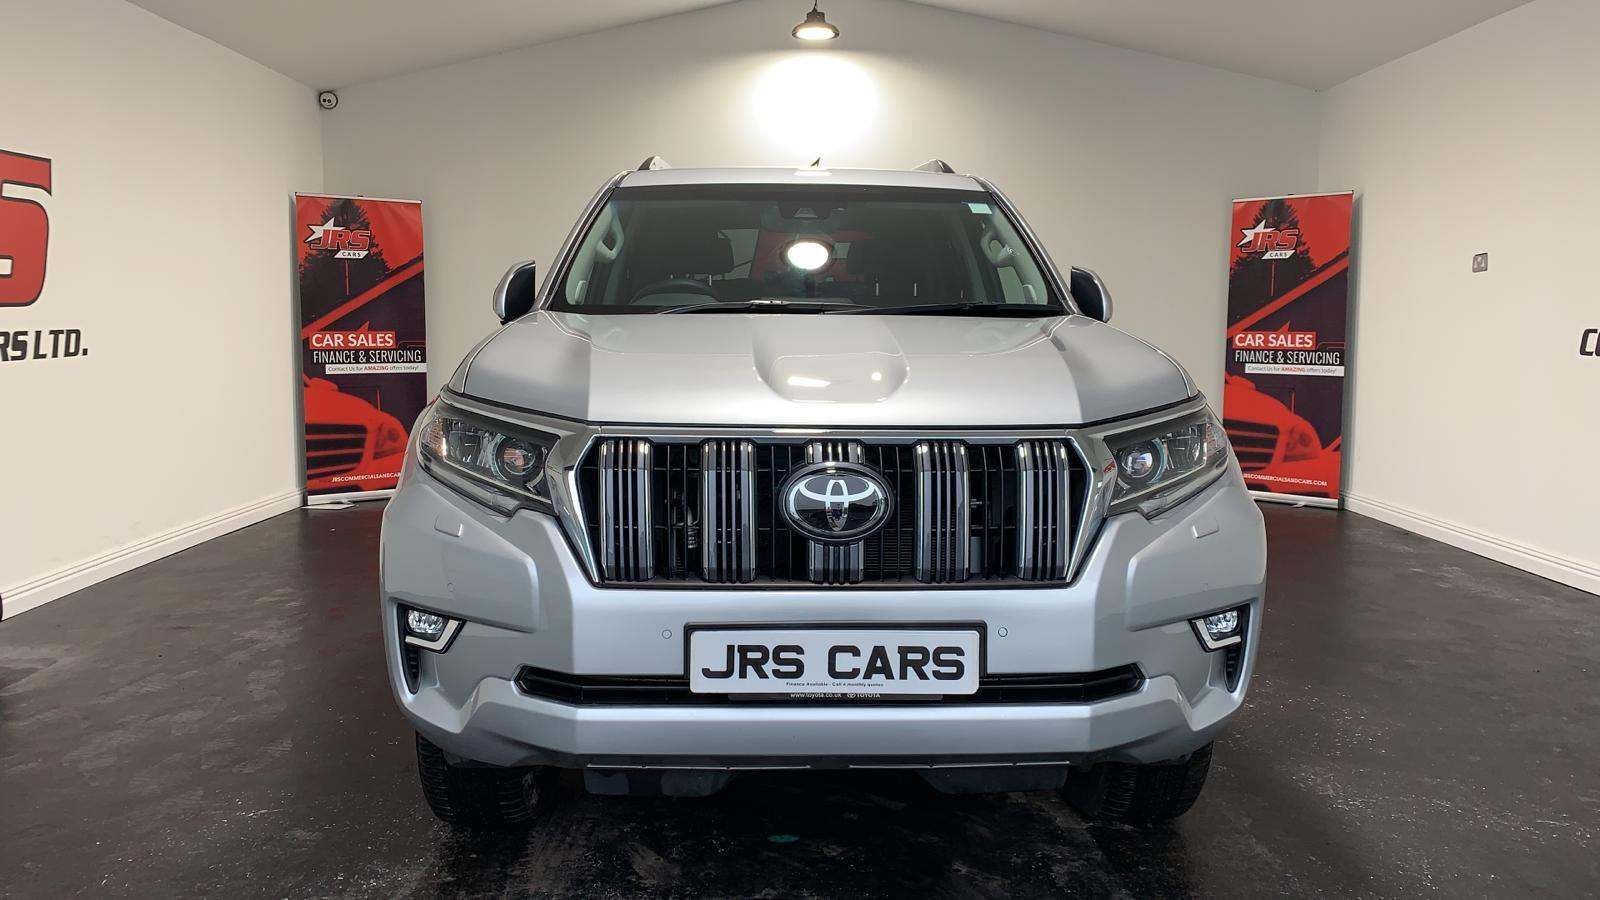 2019 TOYOTA Land Cruiser 2.8D Icon Auto 4WD  (7 Seat) Diesel Automatic *Sat Nav-Rev Camera* – J R S Commercials And Cars Dungannon full